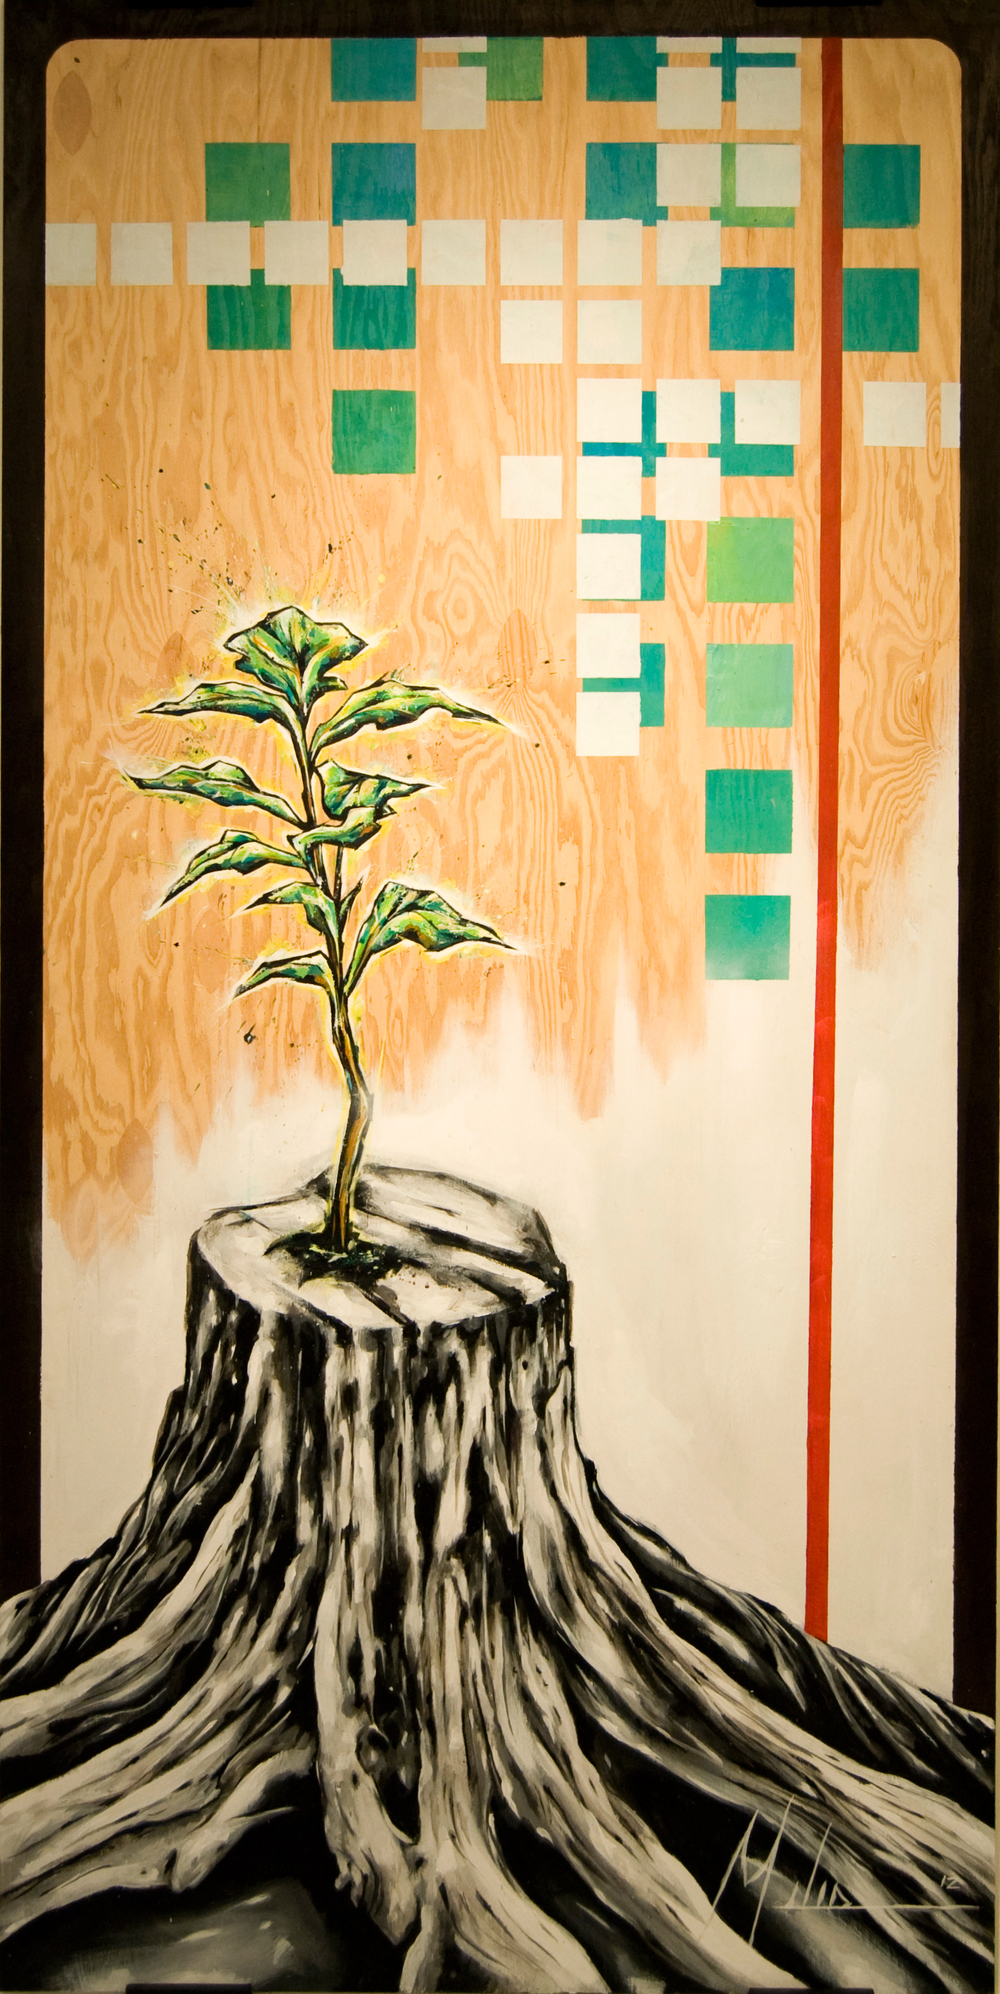 """Regeneration II""  acrylic on wood panel  48"" x 96""  2012  $2600"